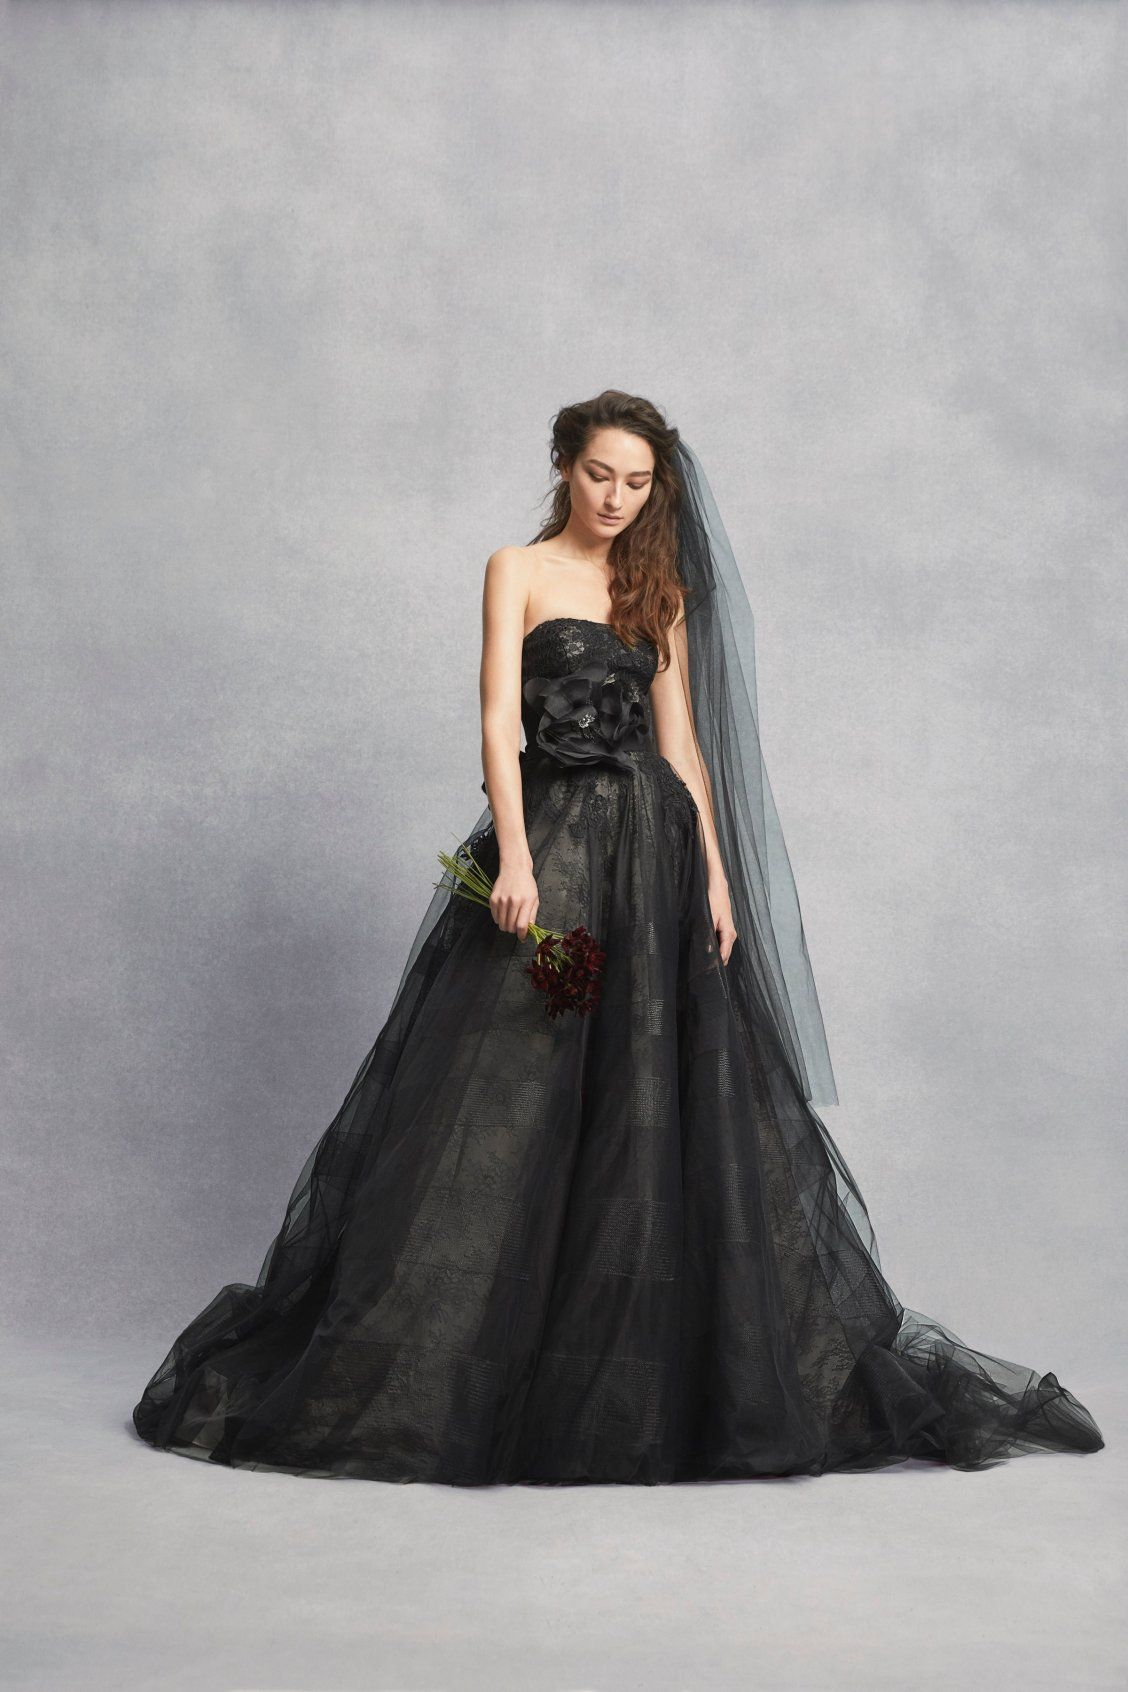 Black Lace Wedding Dress with Tiered